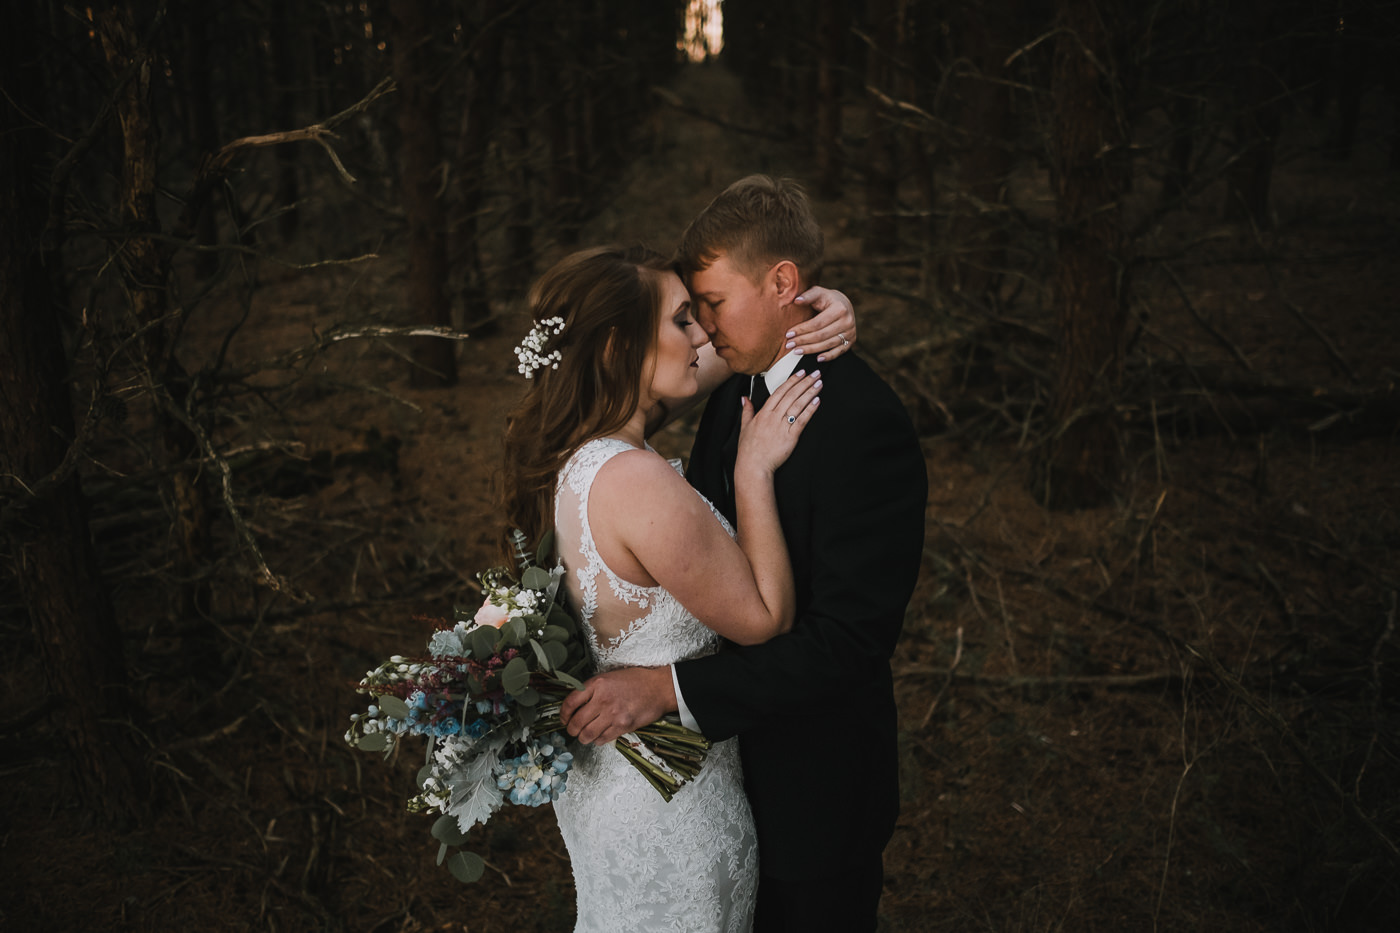 rogers.arkansas.weddingphotos.©2018mileswittboyer-23.jpg